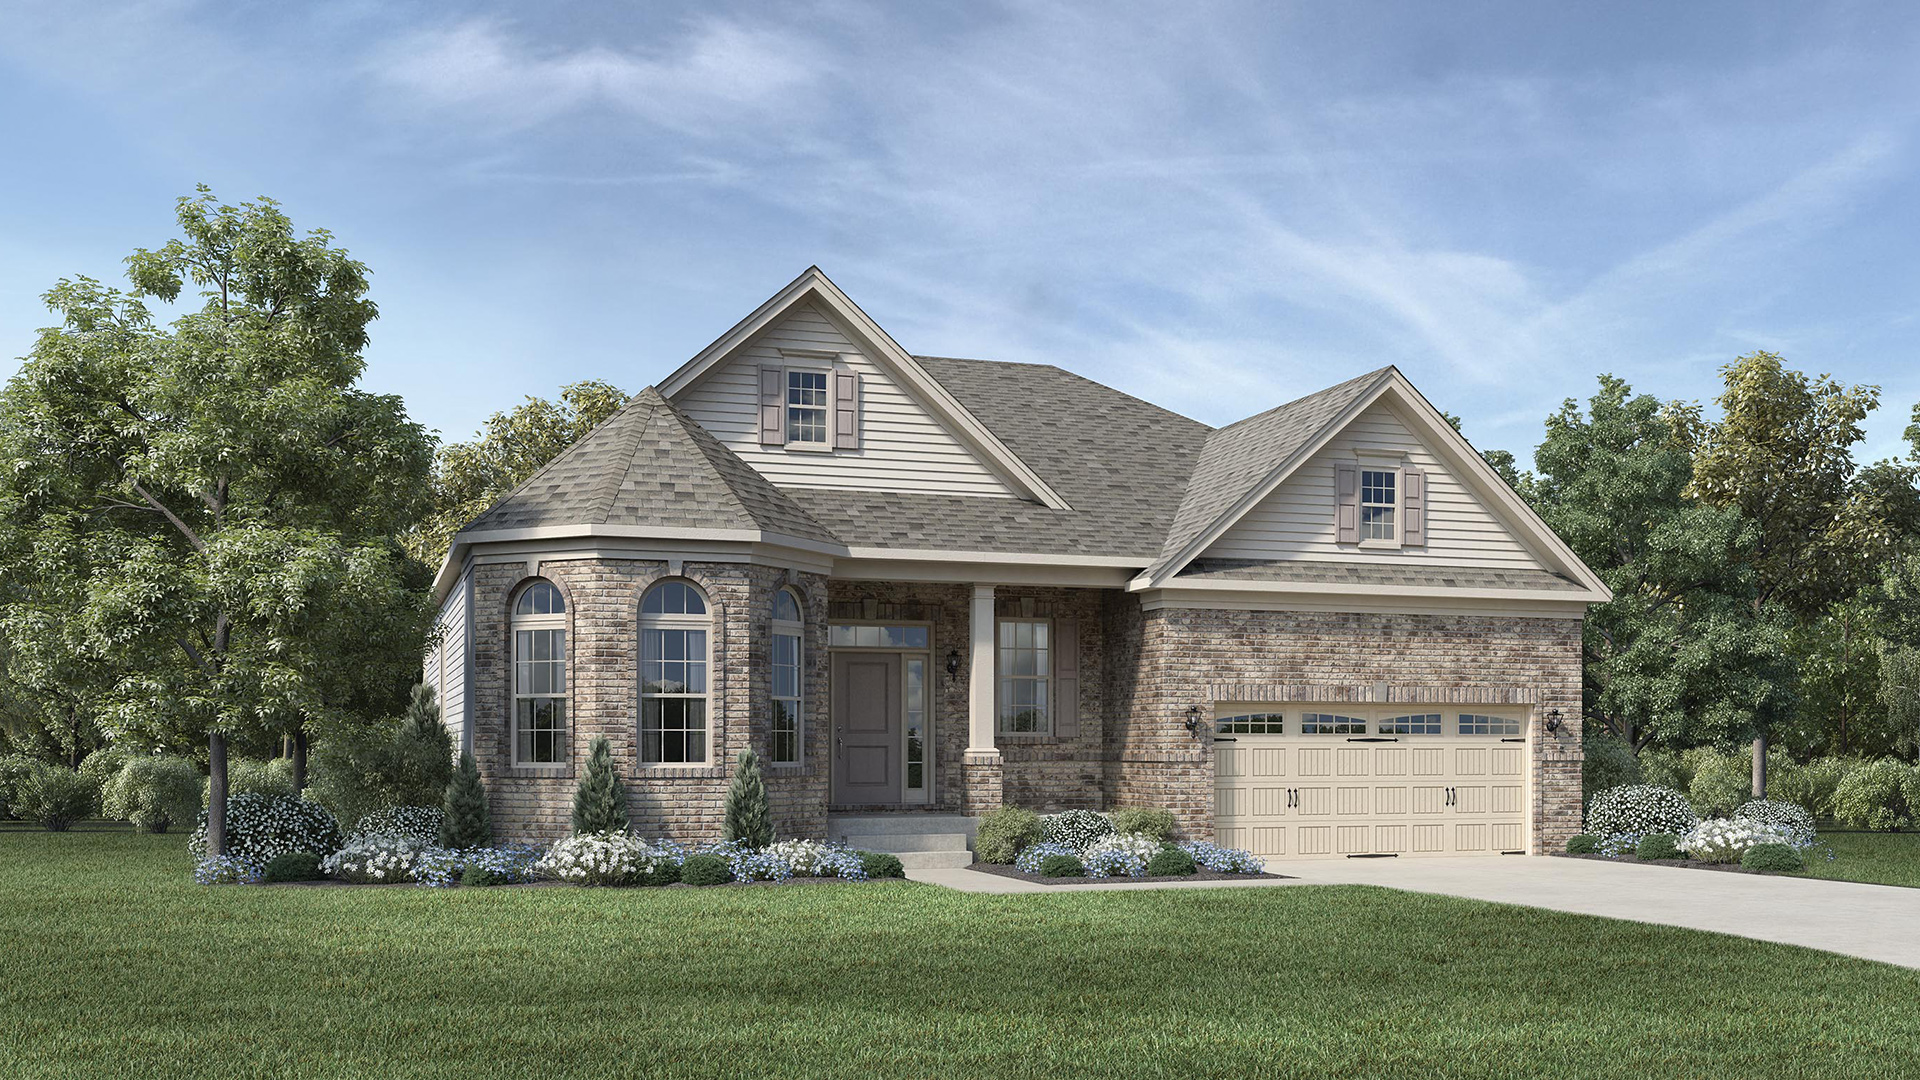 New Luxury Homes For Sale in Apex, NC | Regency at White Oak ... on